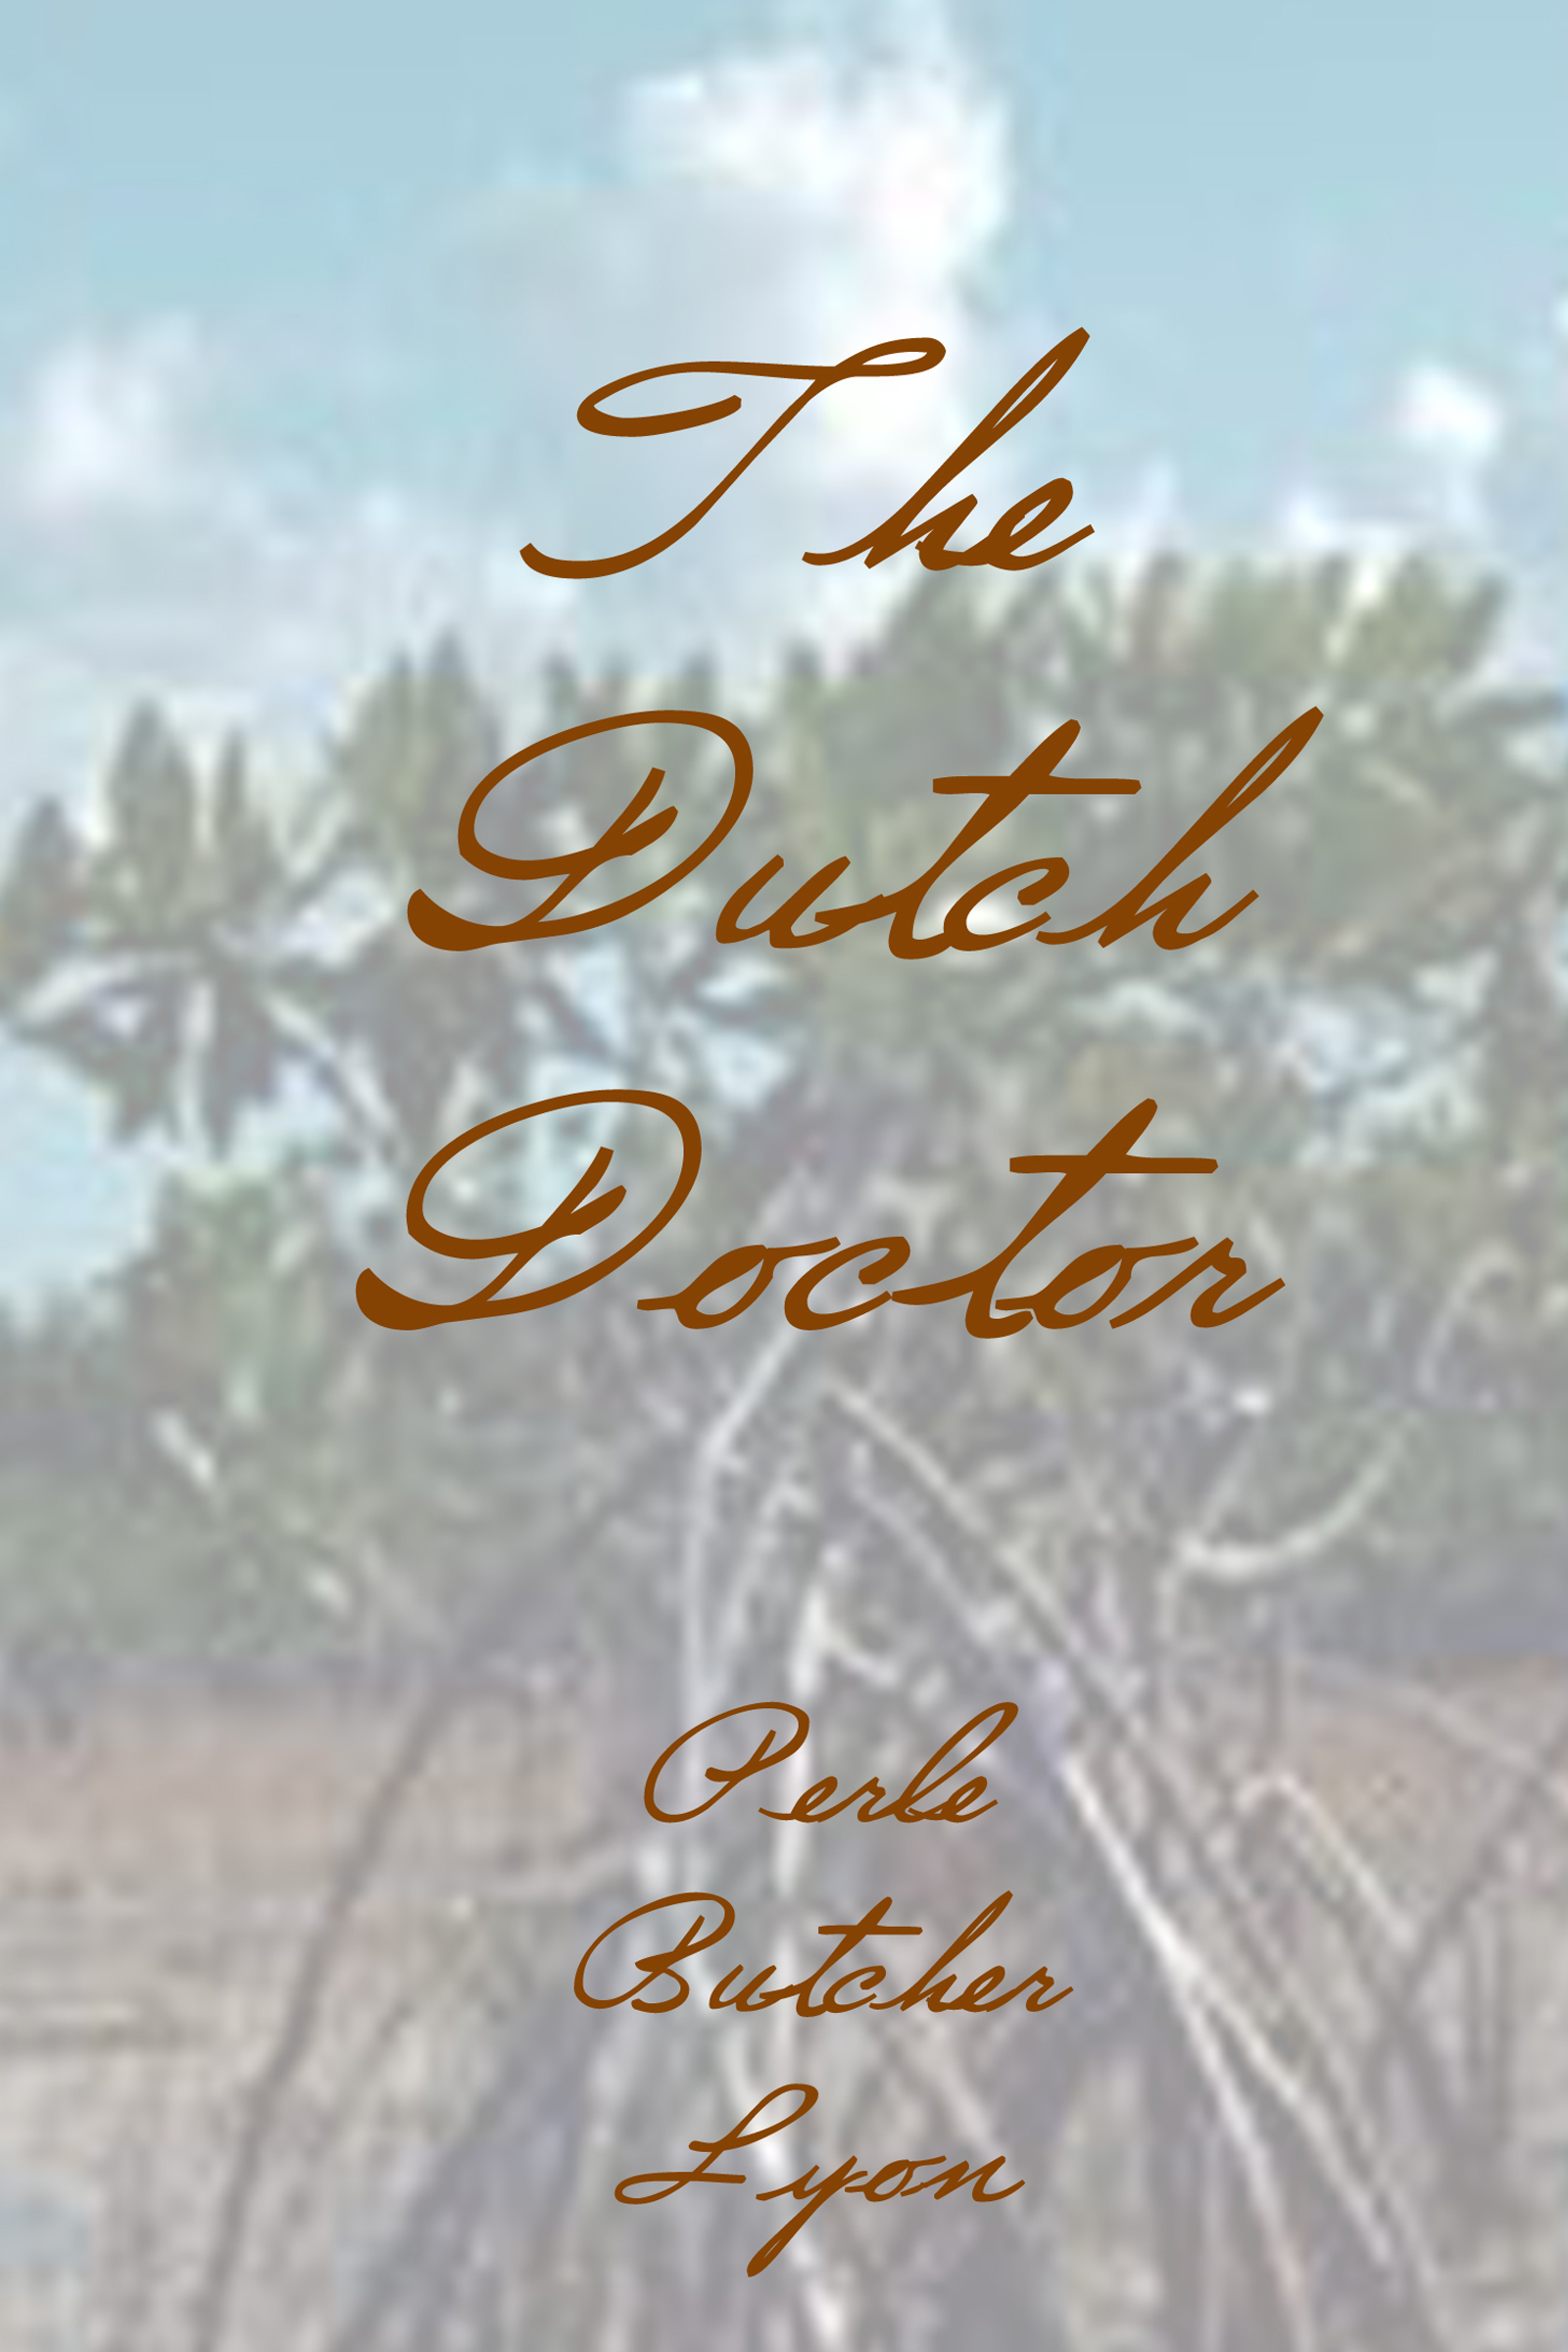 The Dutch Doctor